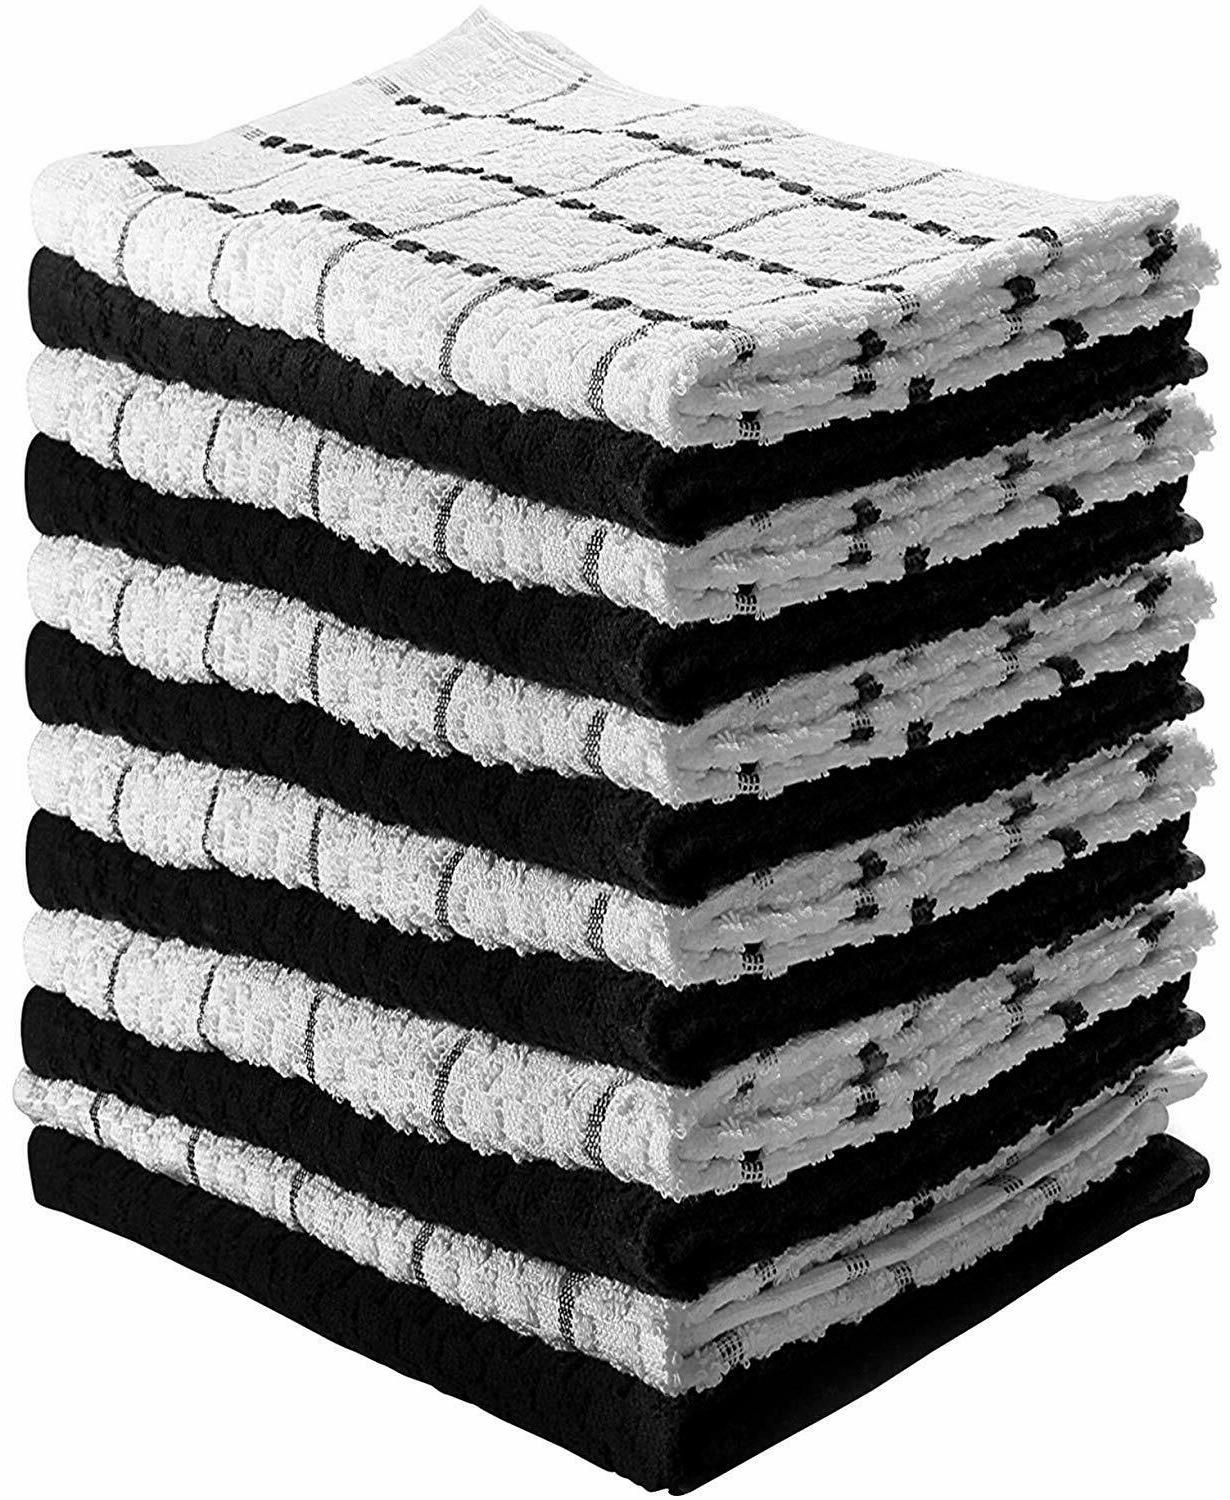 12 Pack Kitchen Towels,15 x 25 Inches Cotton Dish Towels, Te